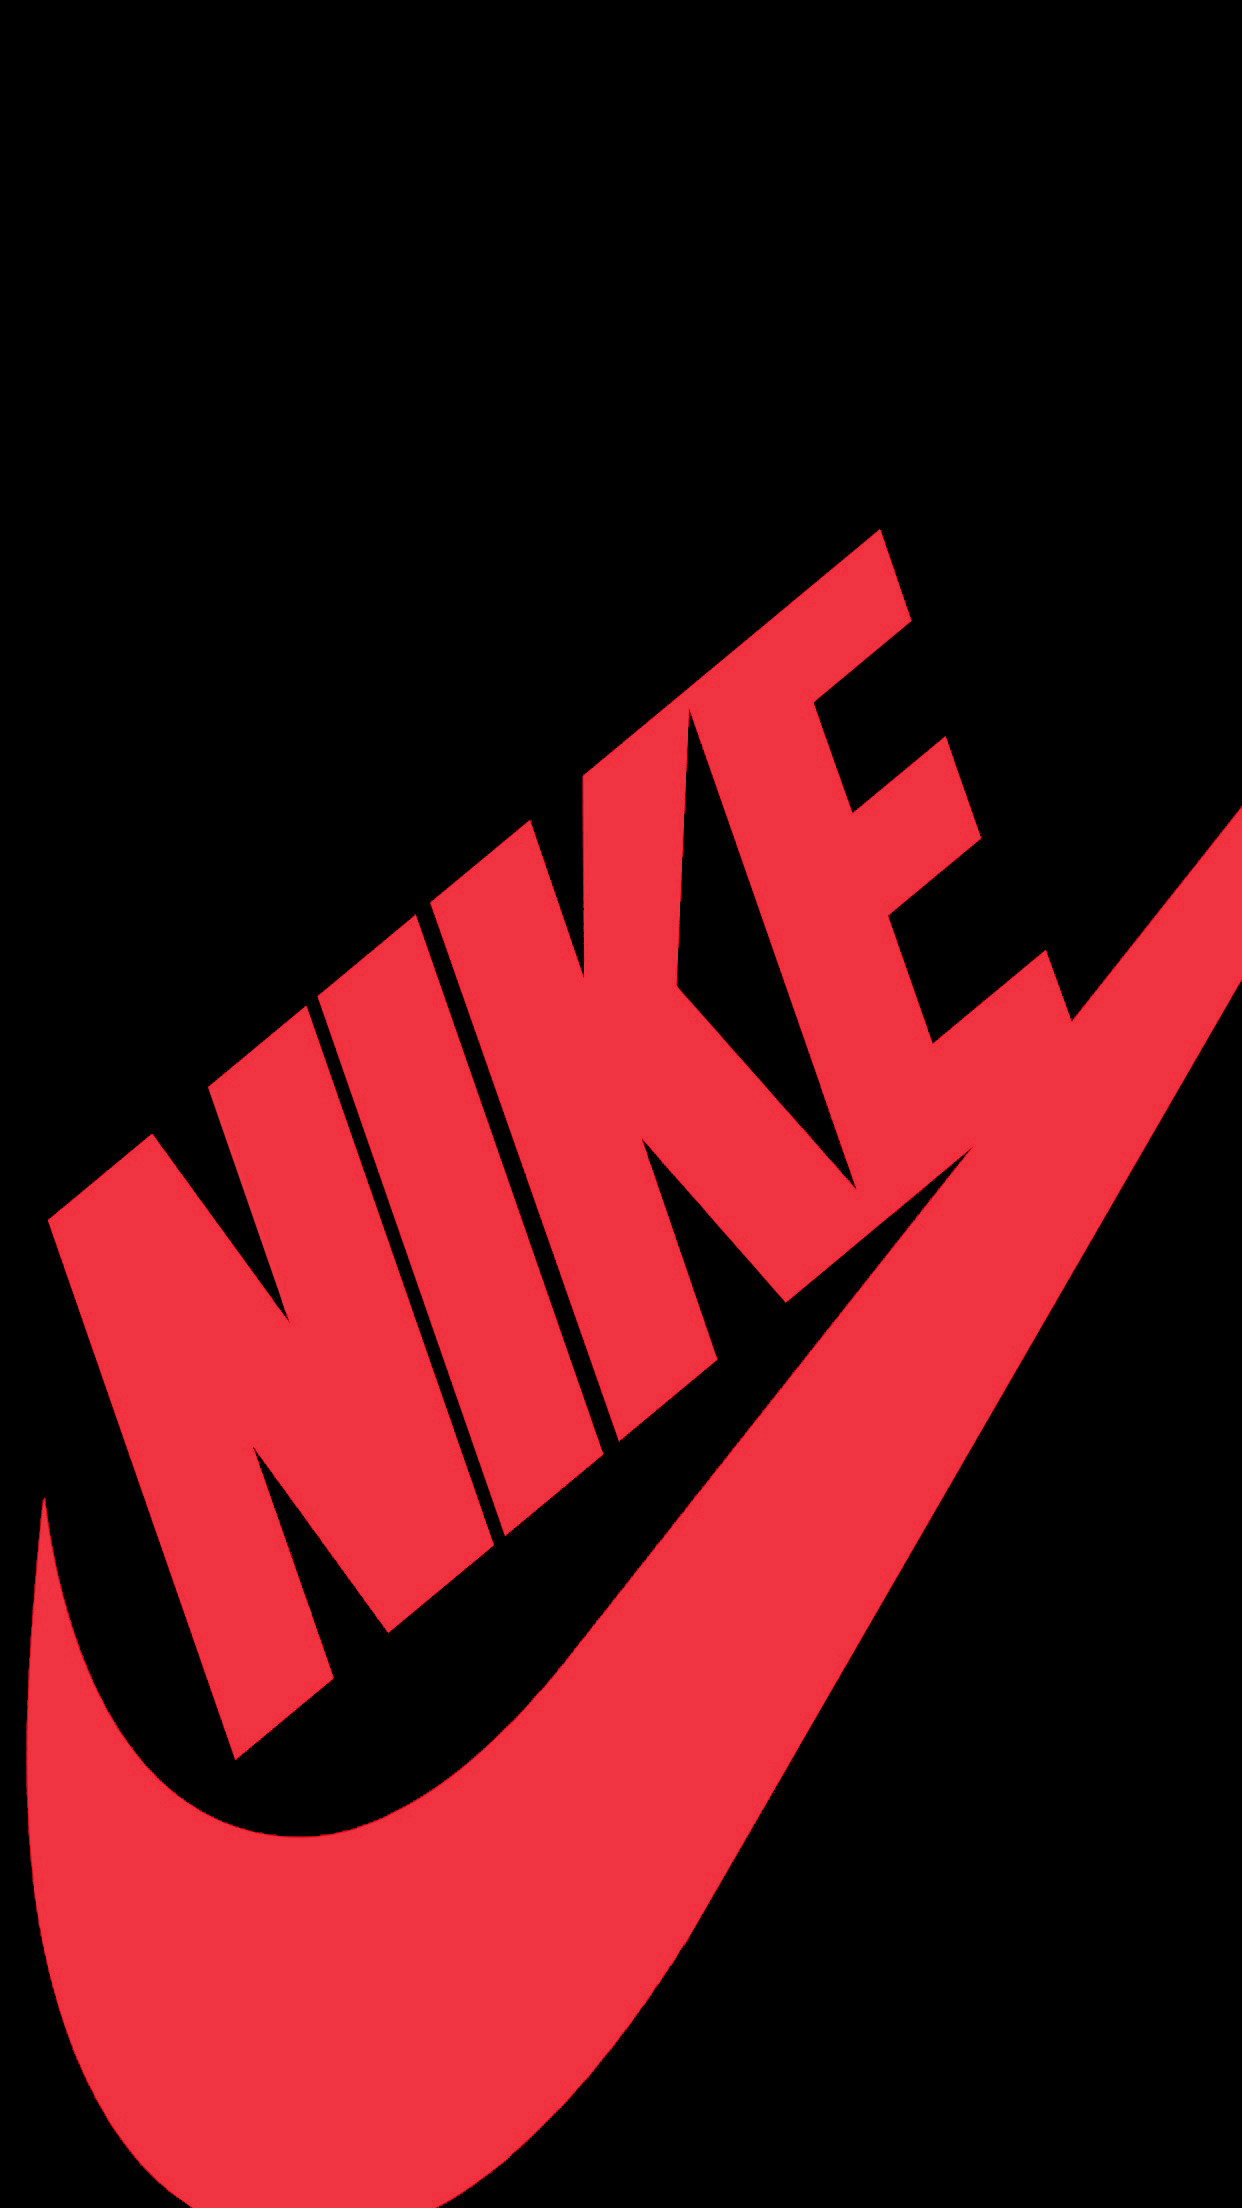 Iphone nike wallpaper hd 78 images - Nike wallpaper hd ...